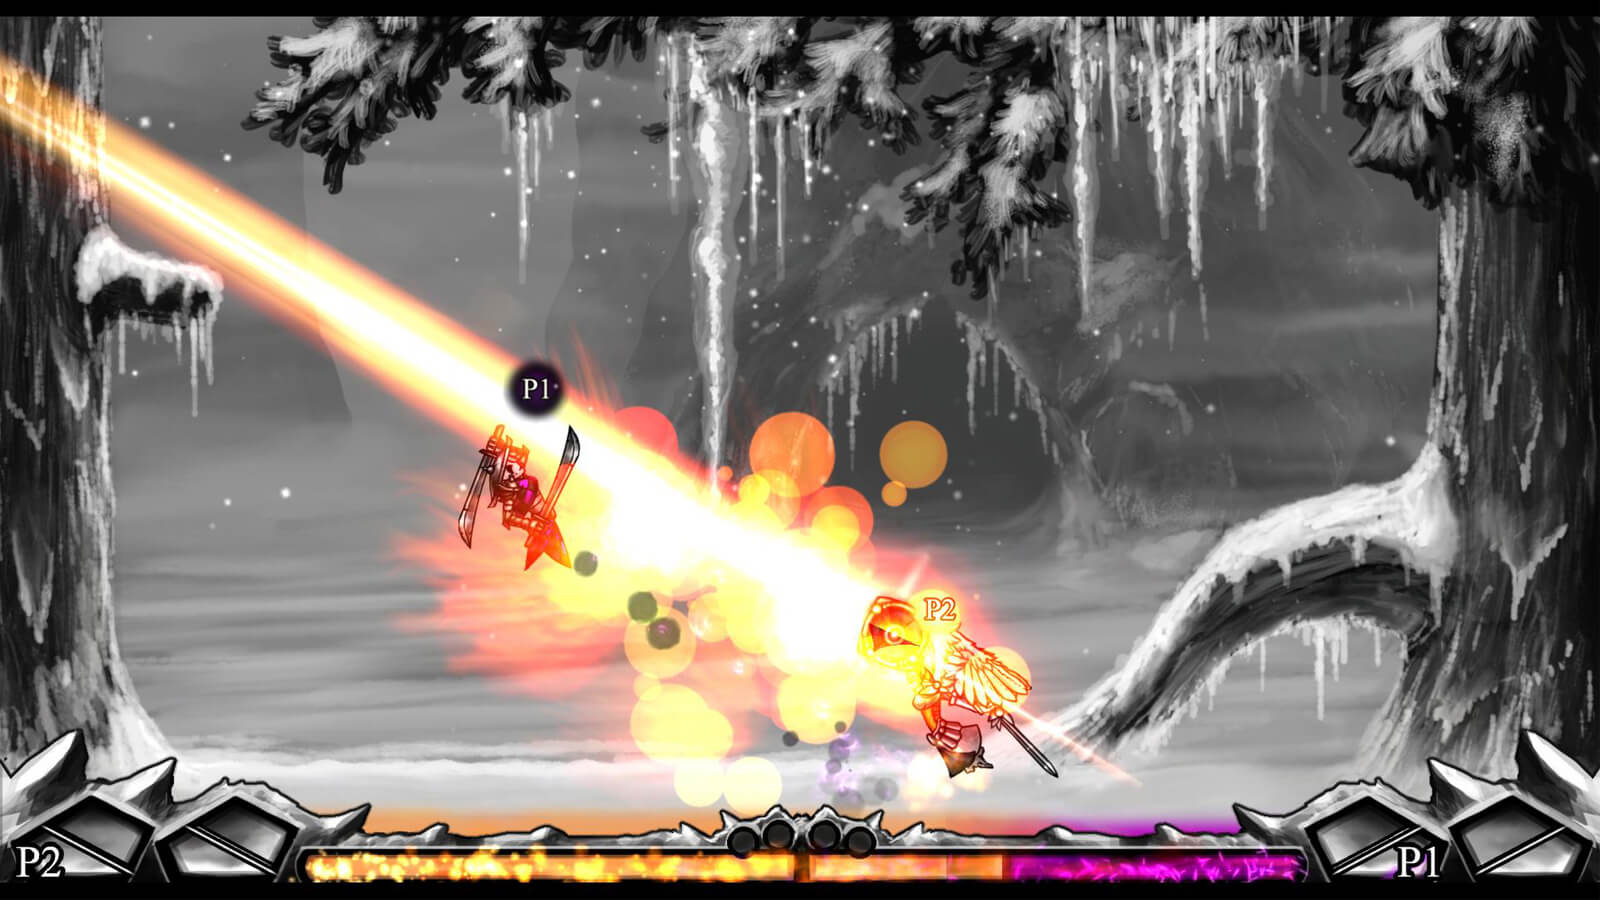 A winged character blasts their opponent with an orange beam of light.